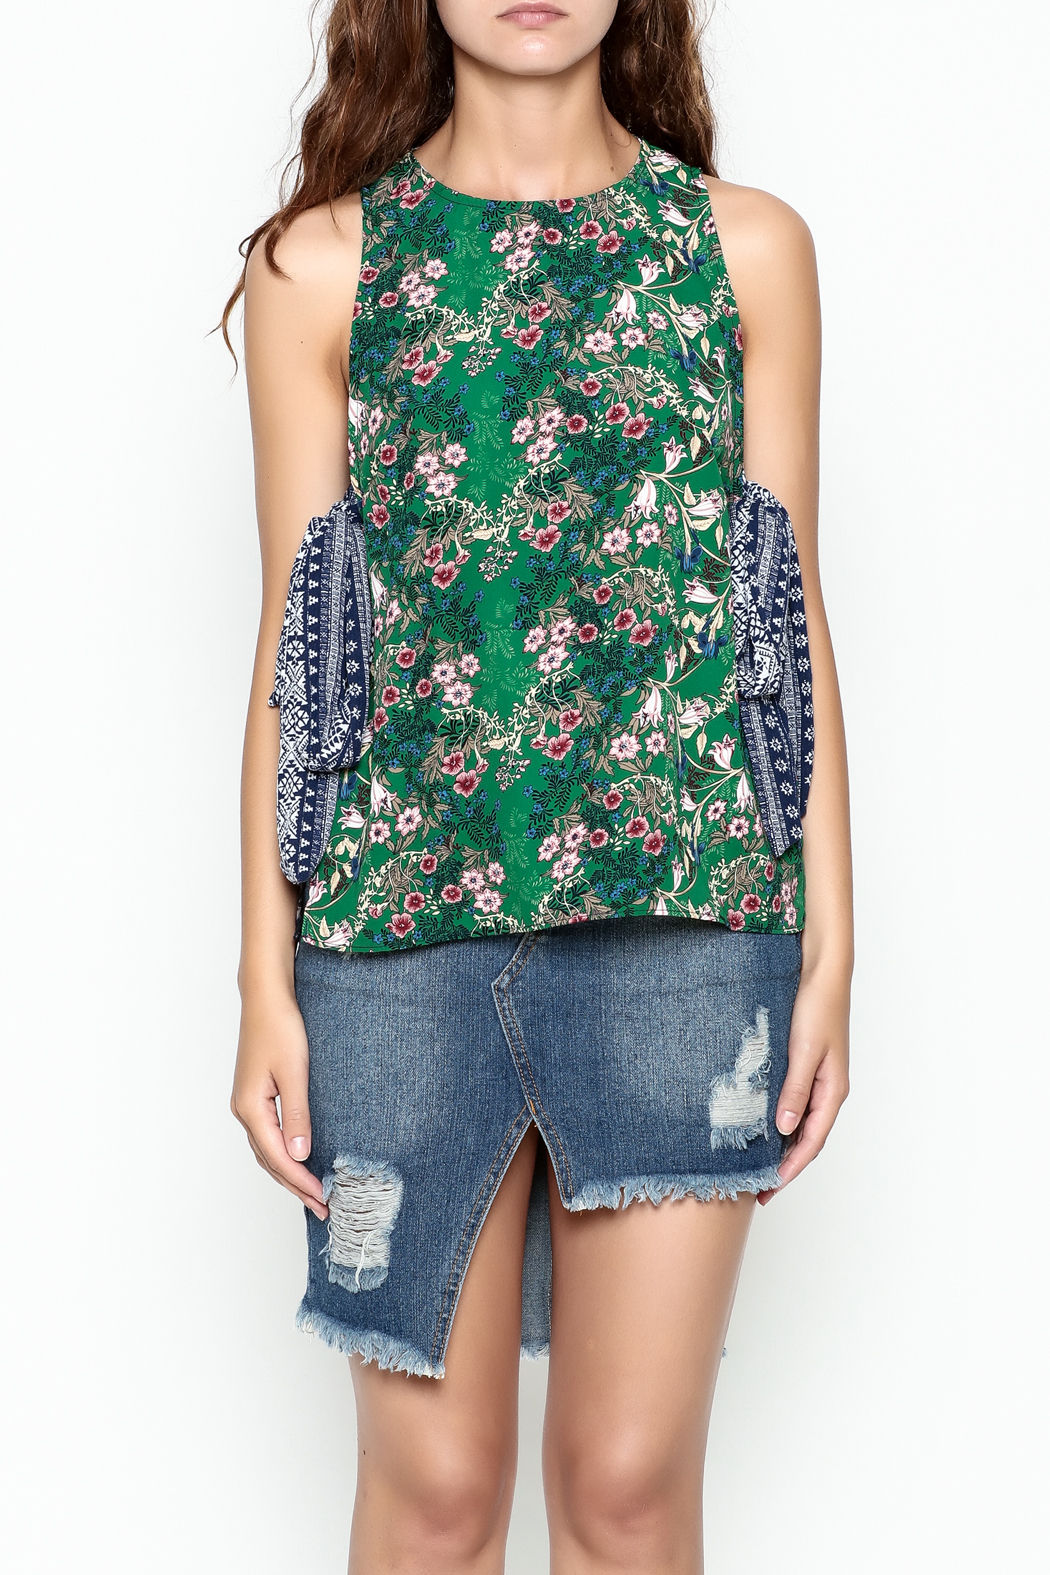 hummingbird Mix Print Top - Front Cropped Image